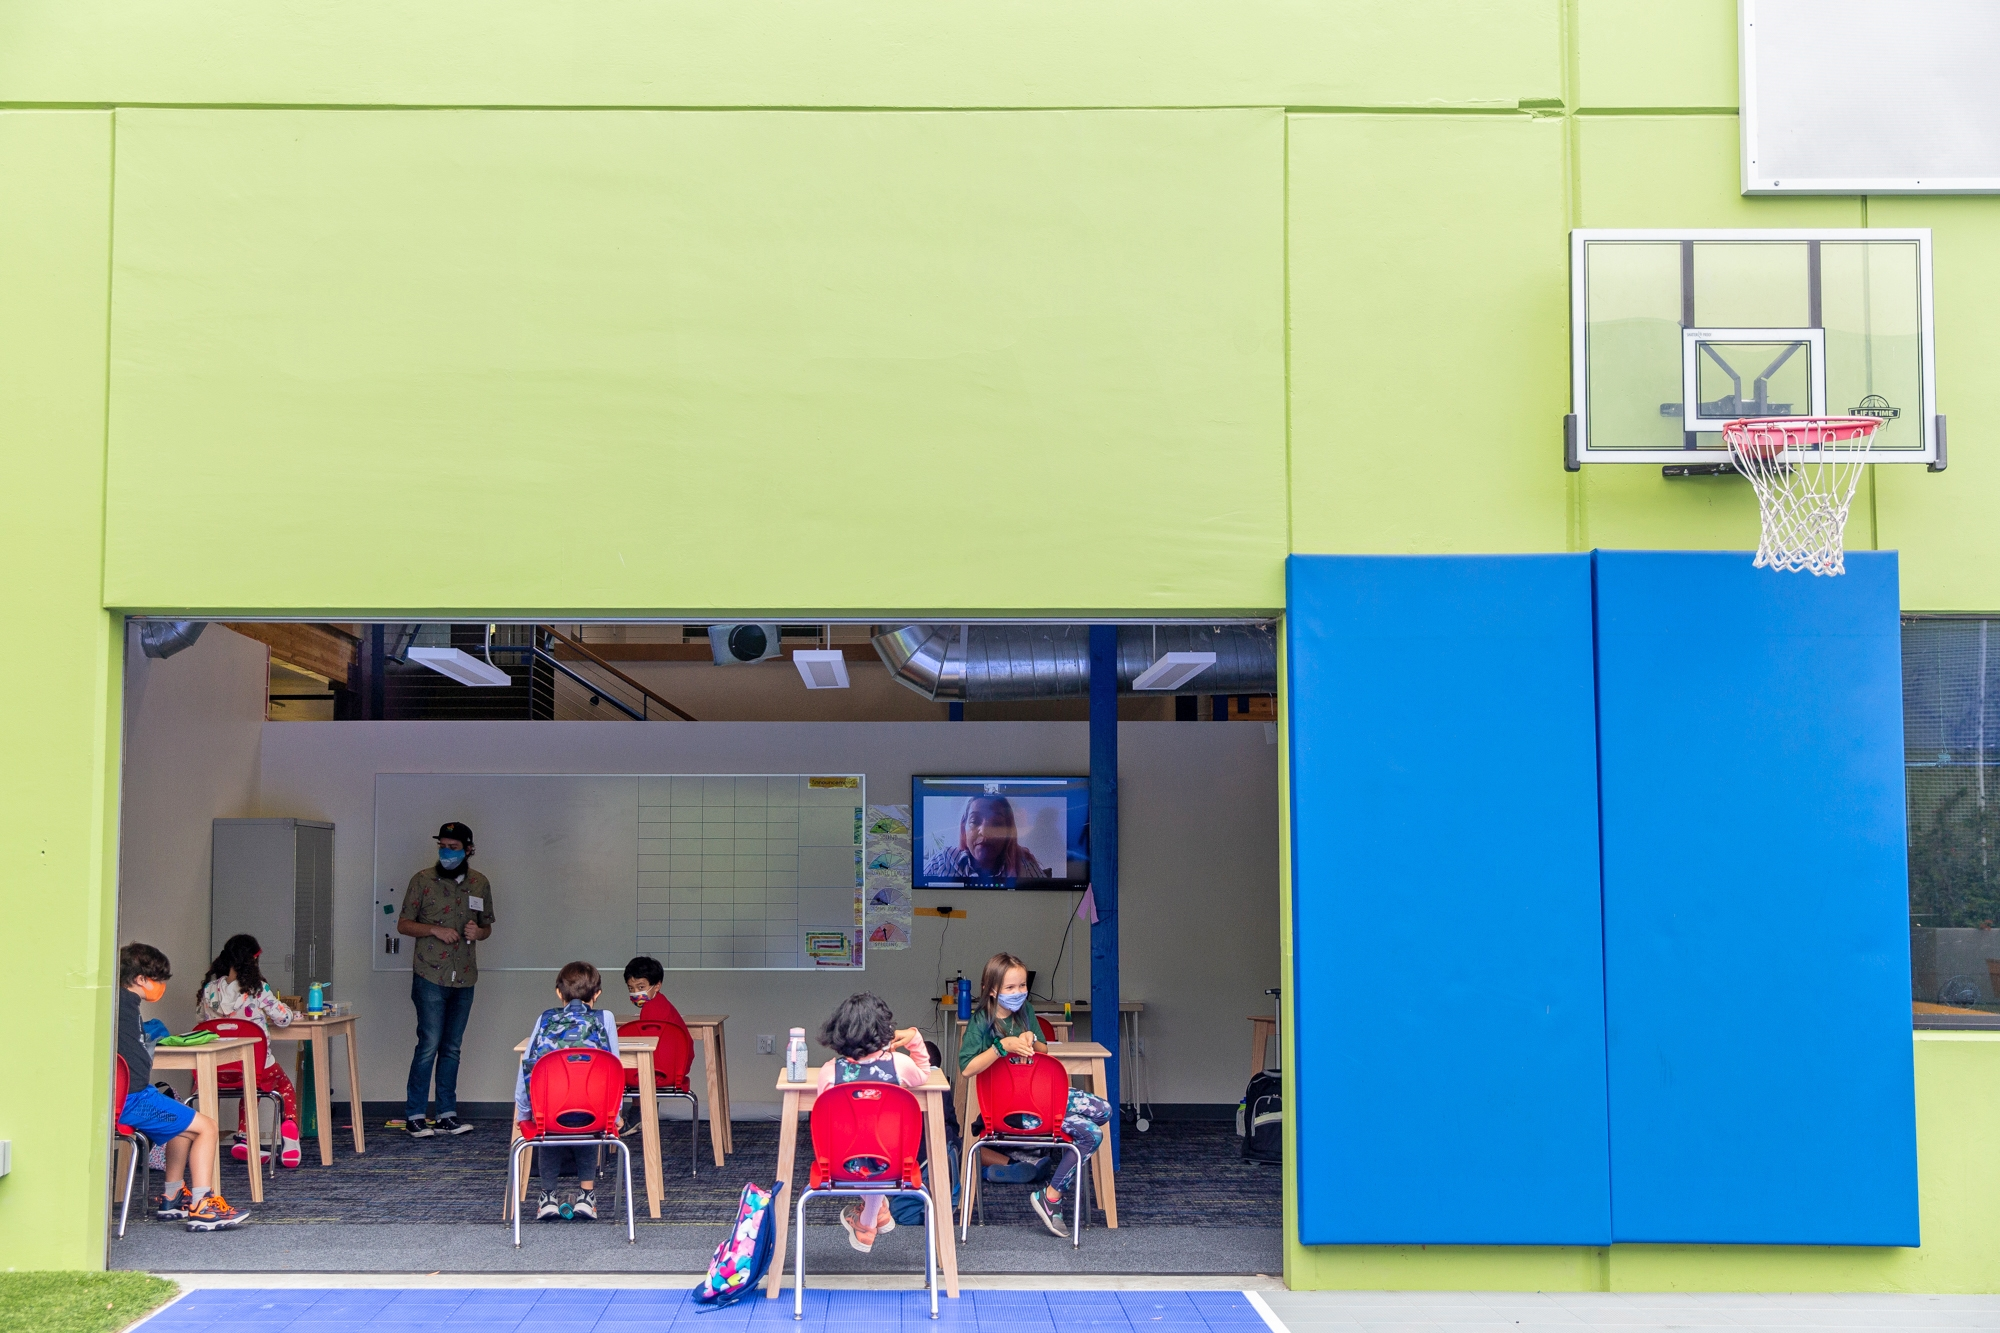 Air hugs and weekly testing: Inside one private school's first day back at school